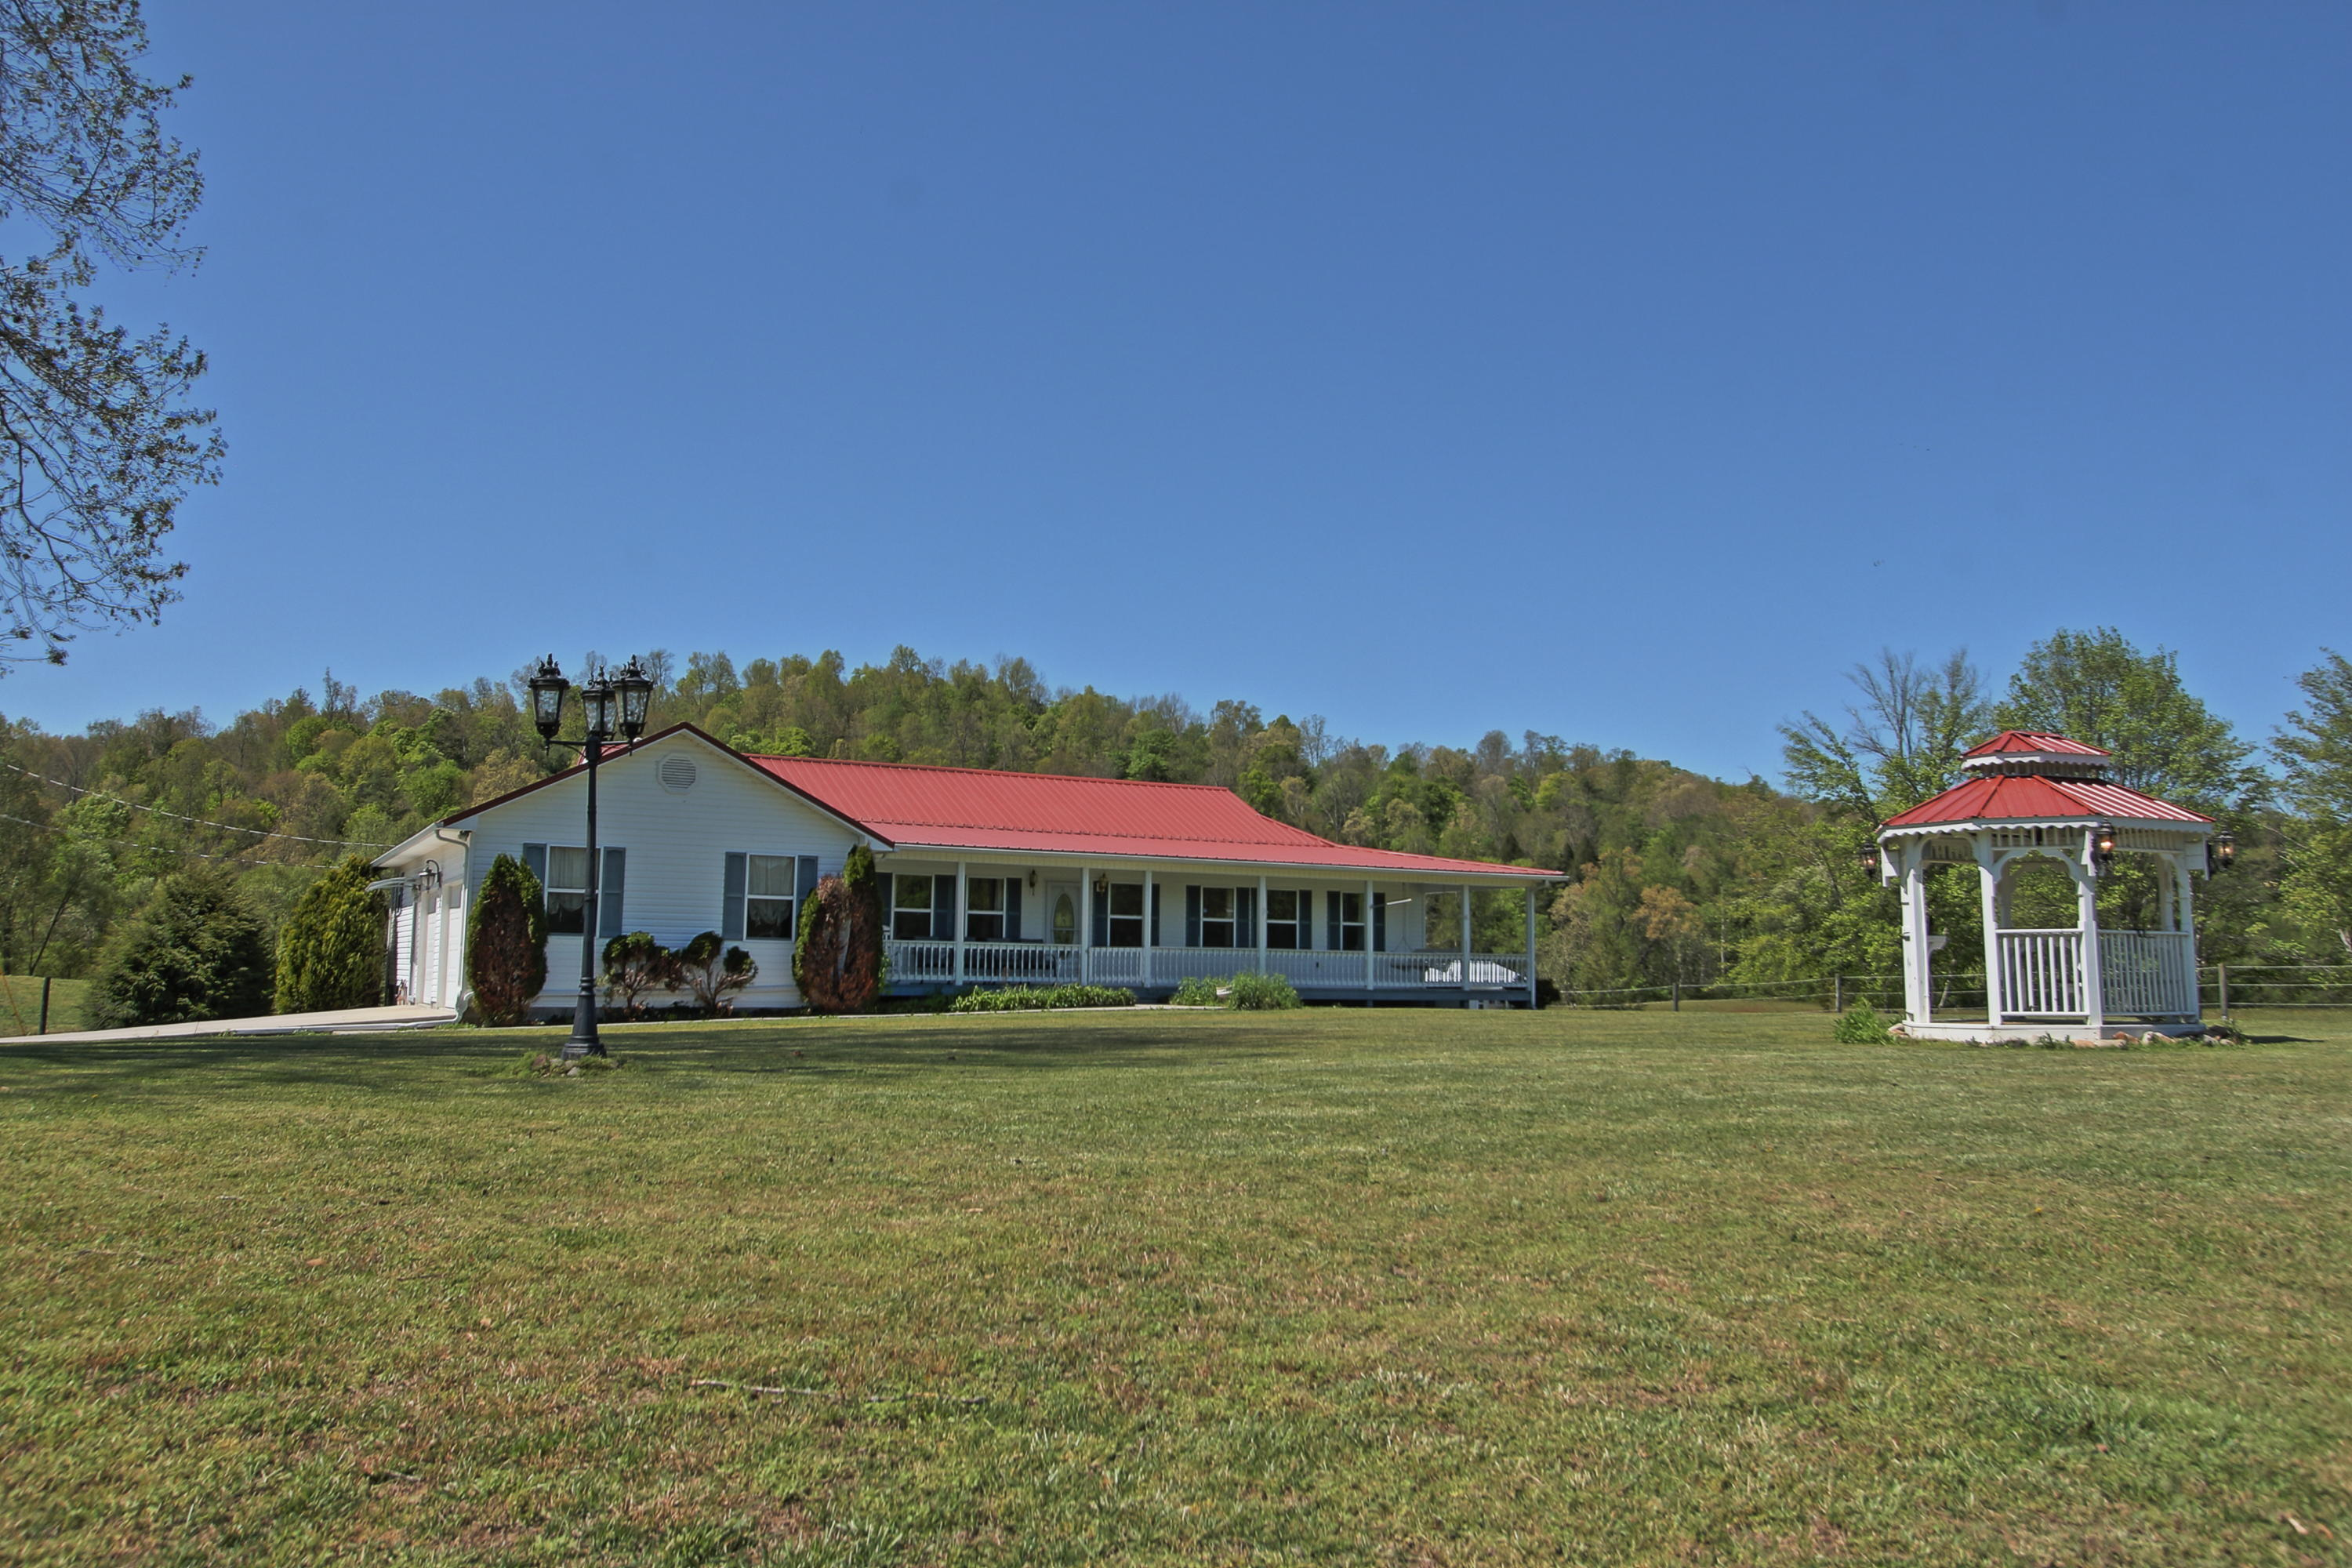 750 Nydeck Rd, Robbins, Tennessee 37852, 3 Bedrooms Bedrooms, ,2 BathroomsBathrooms,Single Family,For Sale,Nydeck,1116367